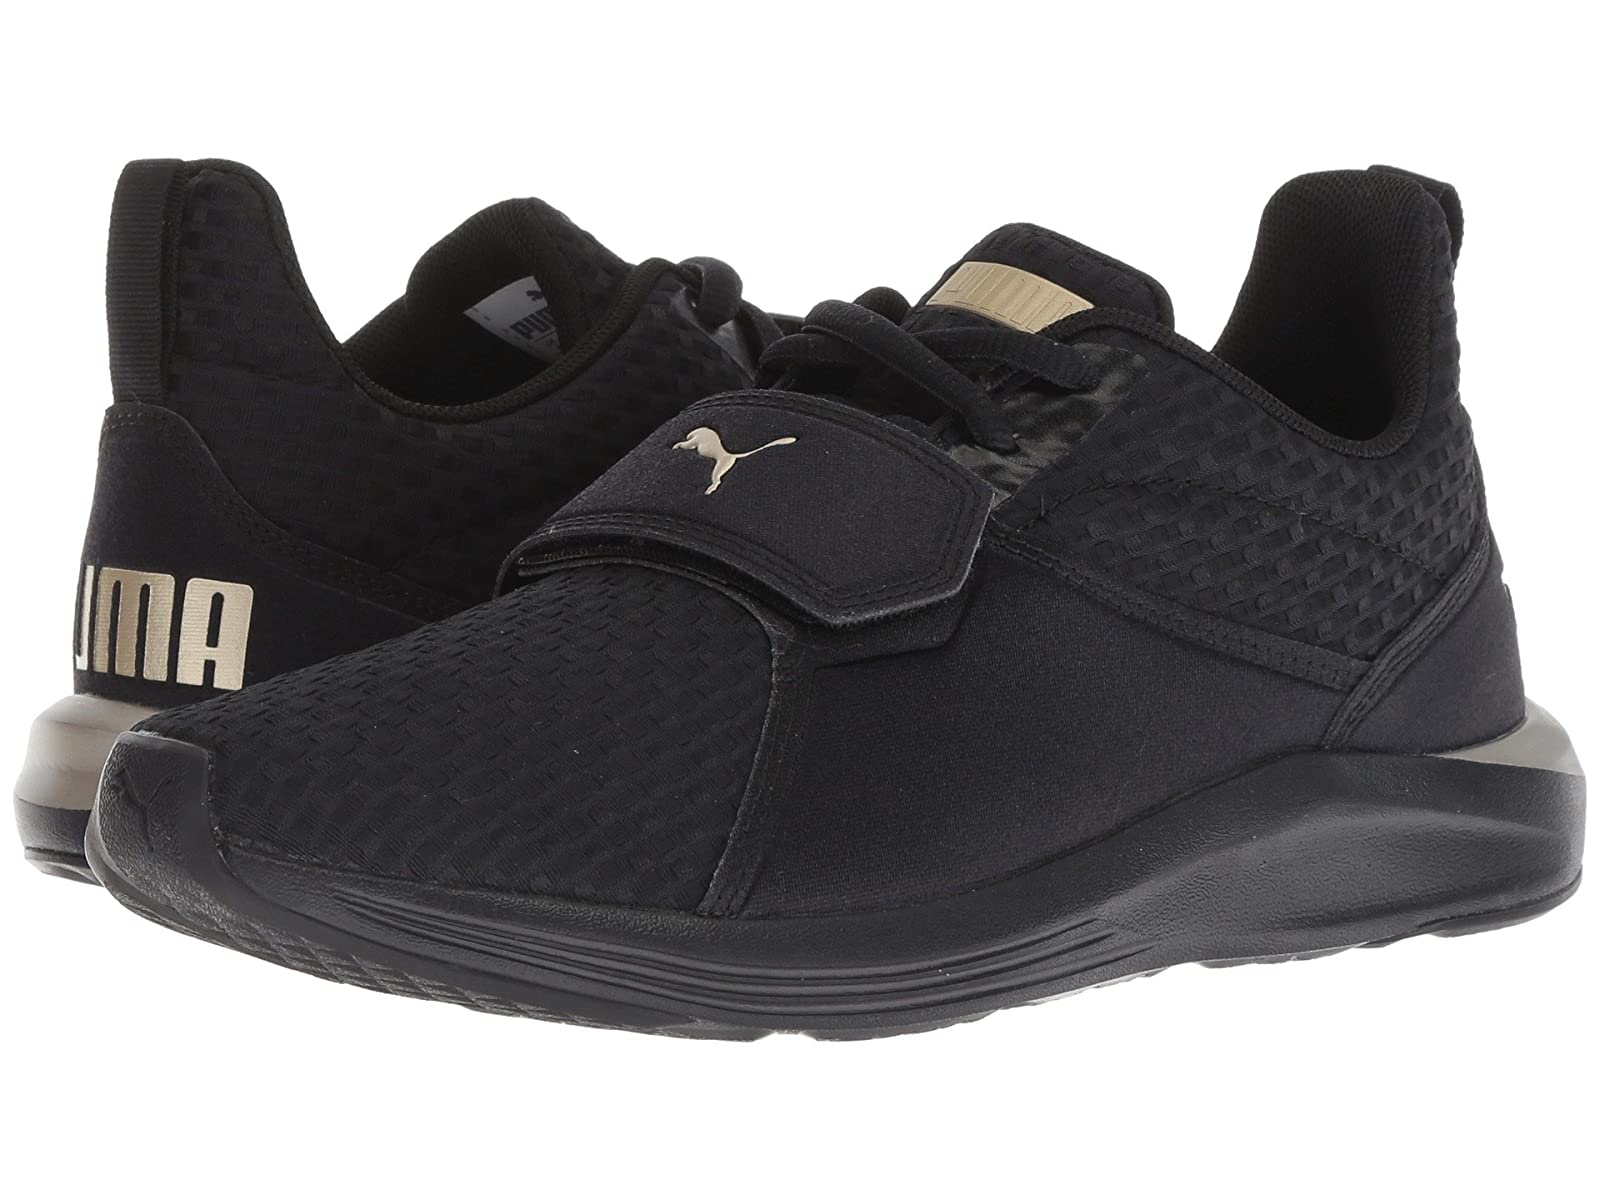 PUMA Prodigy VTAtmospheric grades have affordable shoes